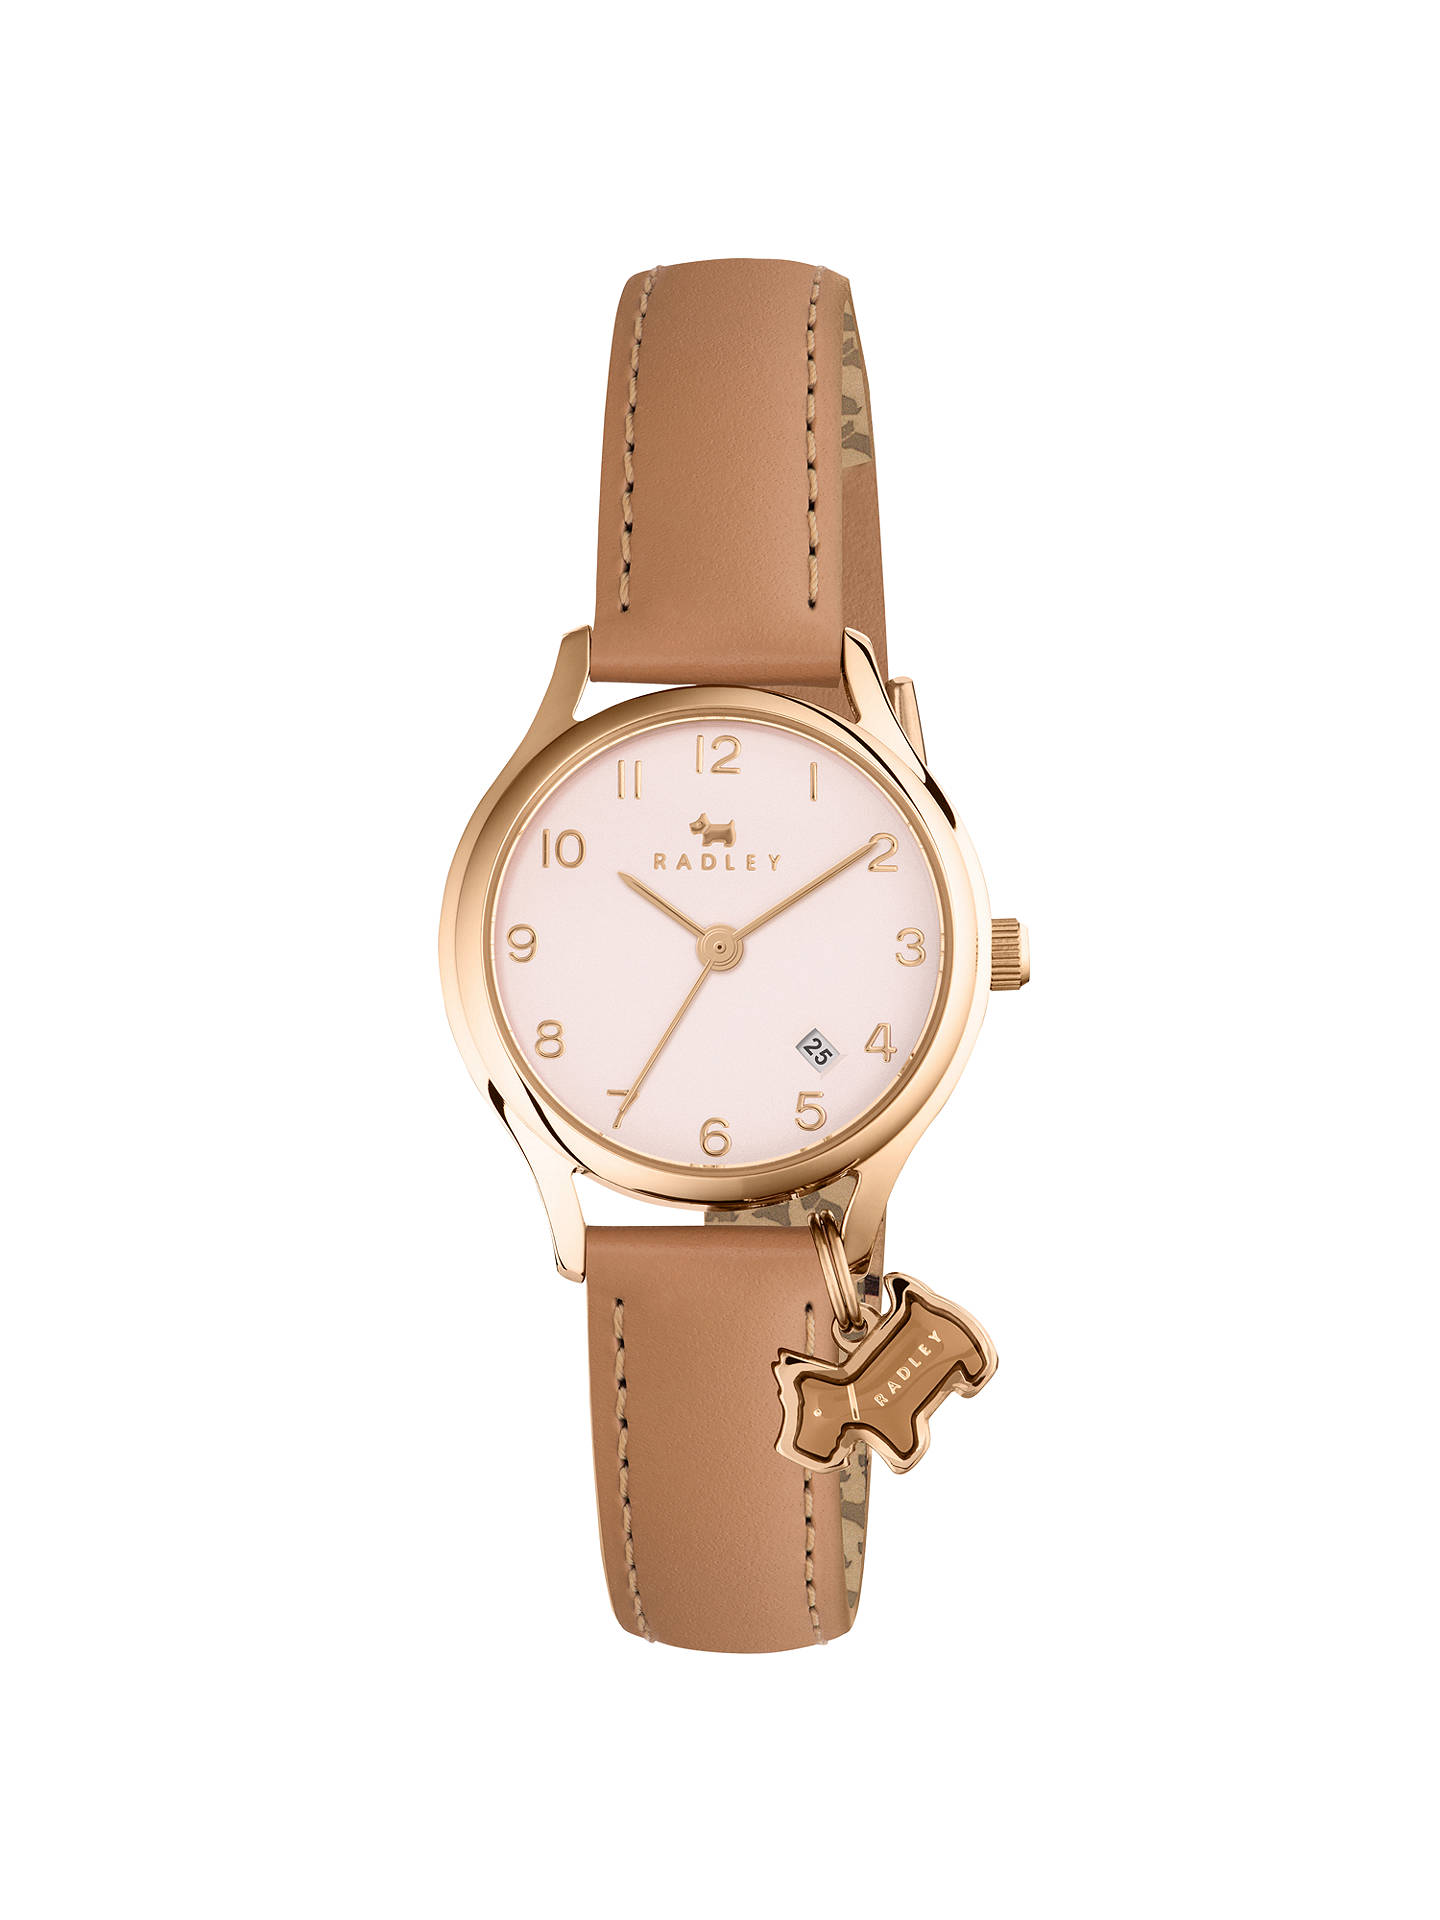 BuyRadley Women's Liverpool Street Mini Date Leather Strap Watch, Brown/Nude RY2452 Online at johnlewis.com